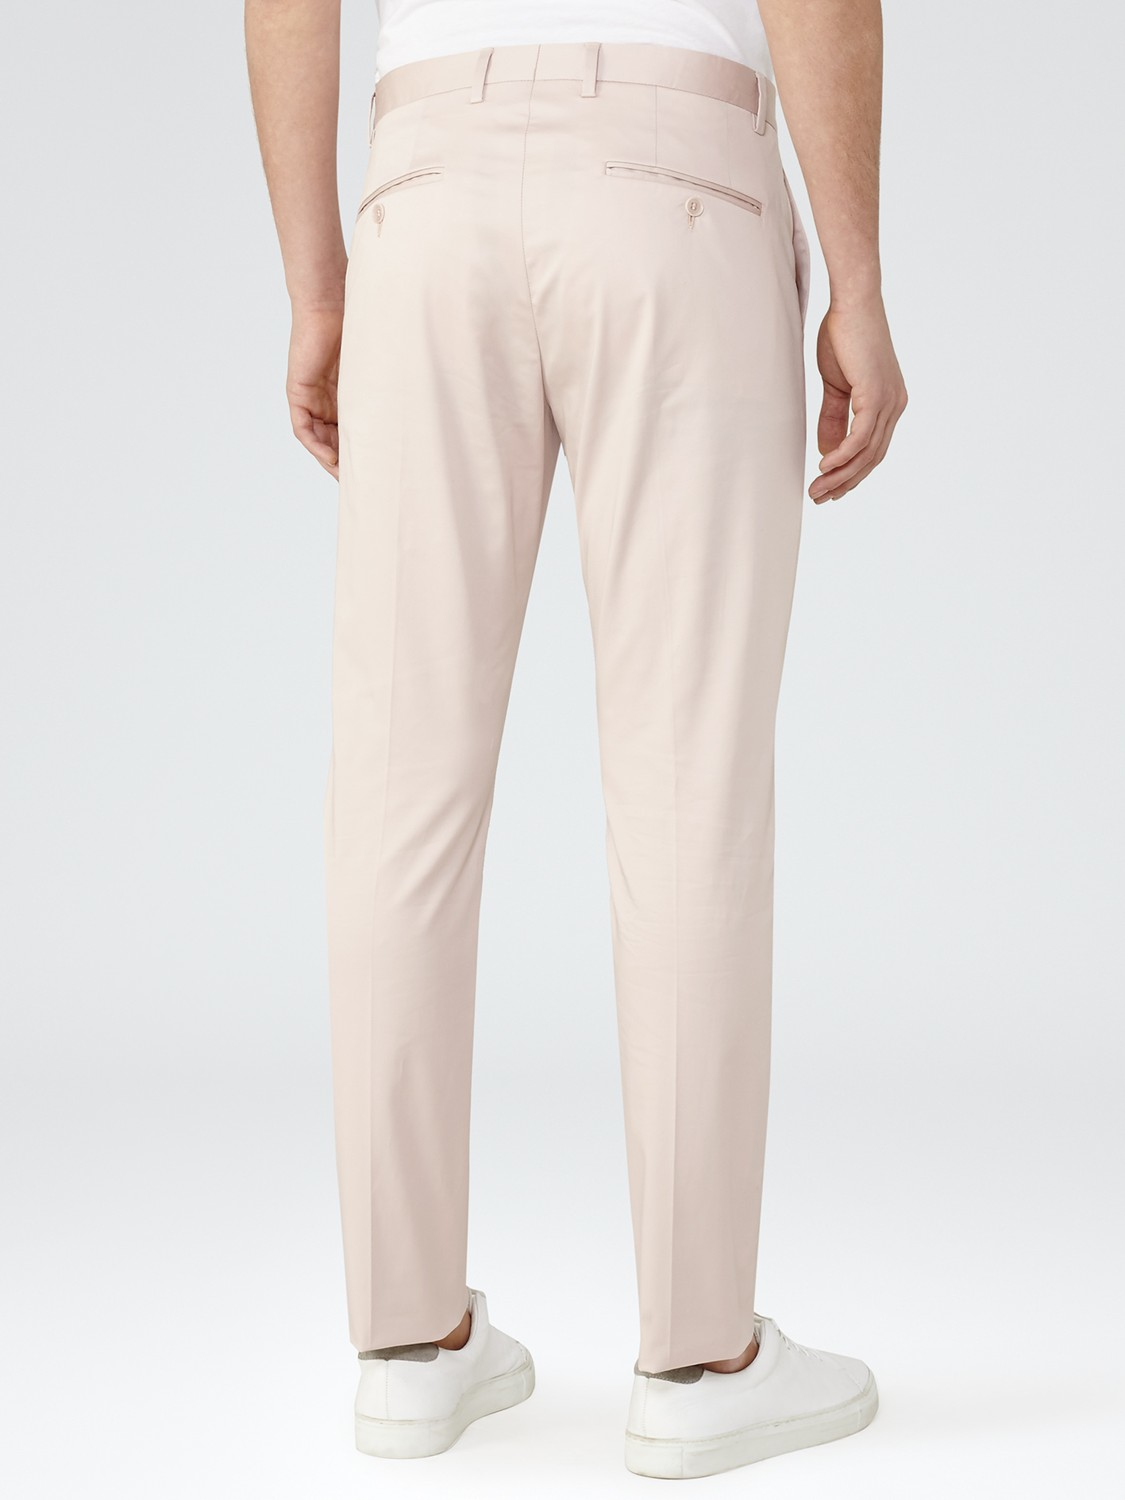 Reiss Cotton Boulevard Twill Slim Fit Trousers in Salmon (Pink) for Men